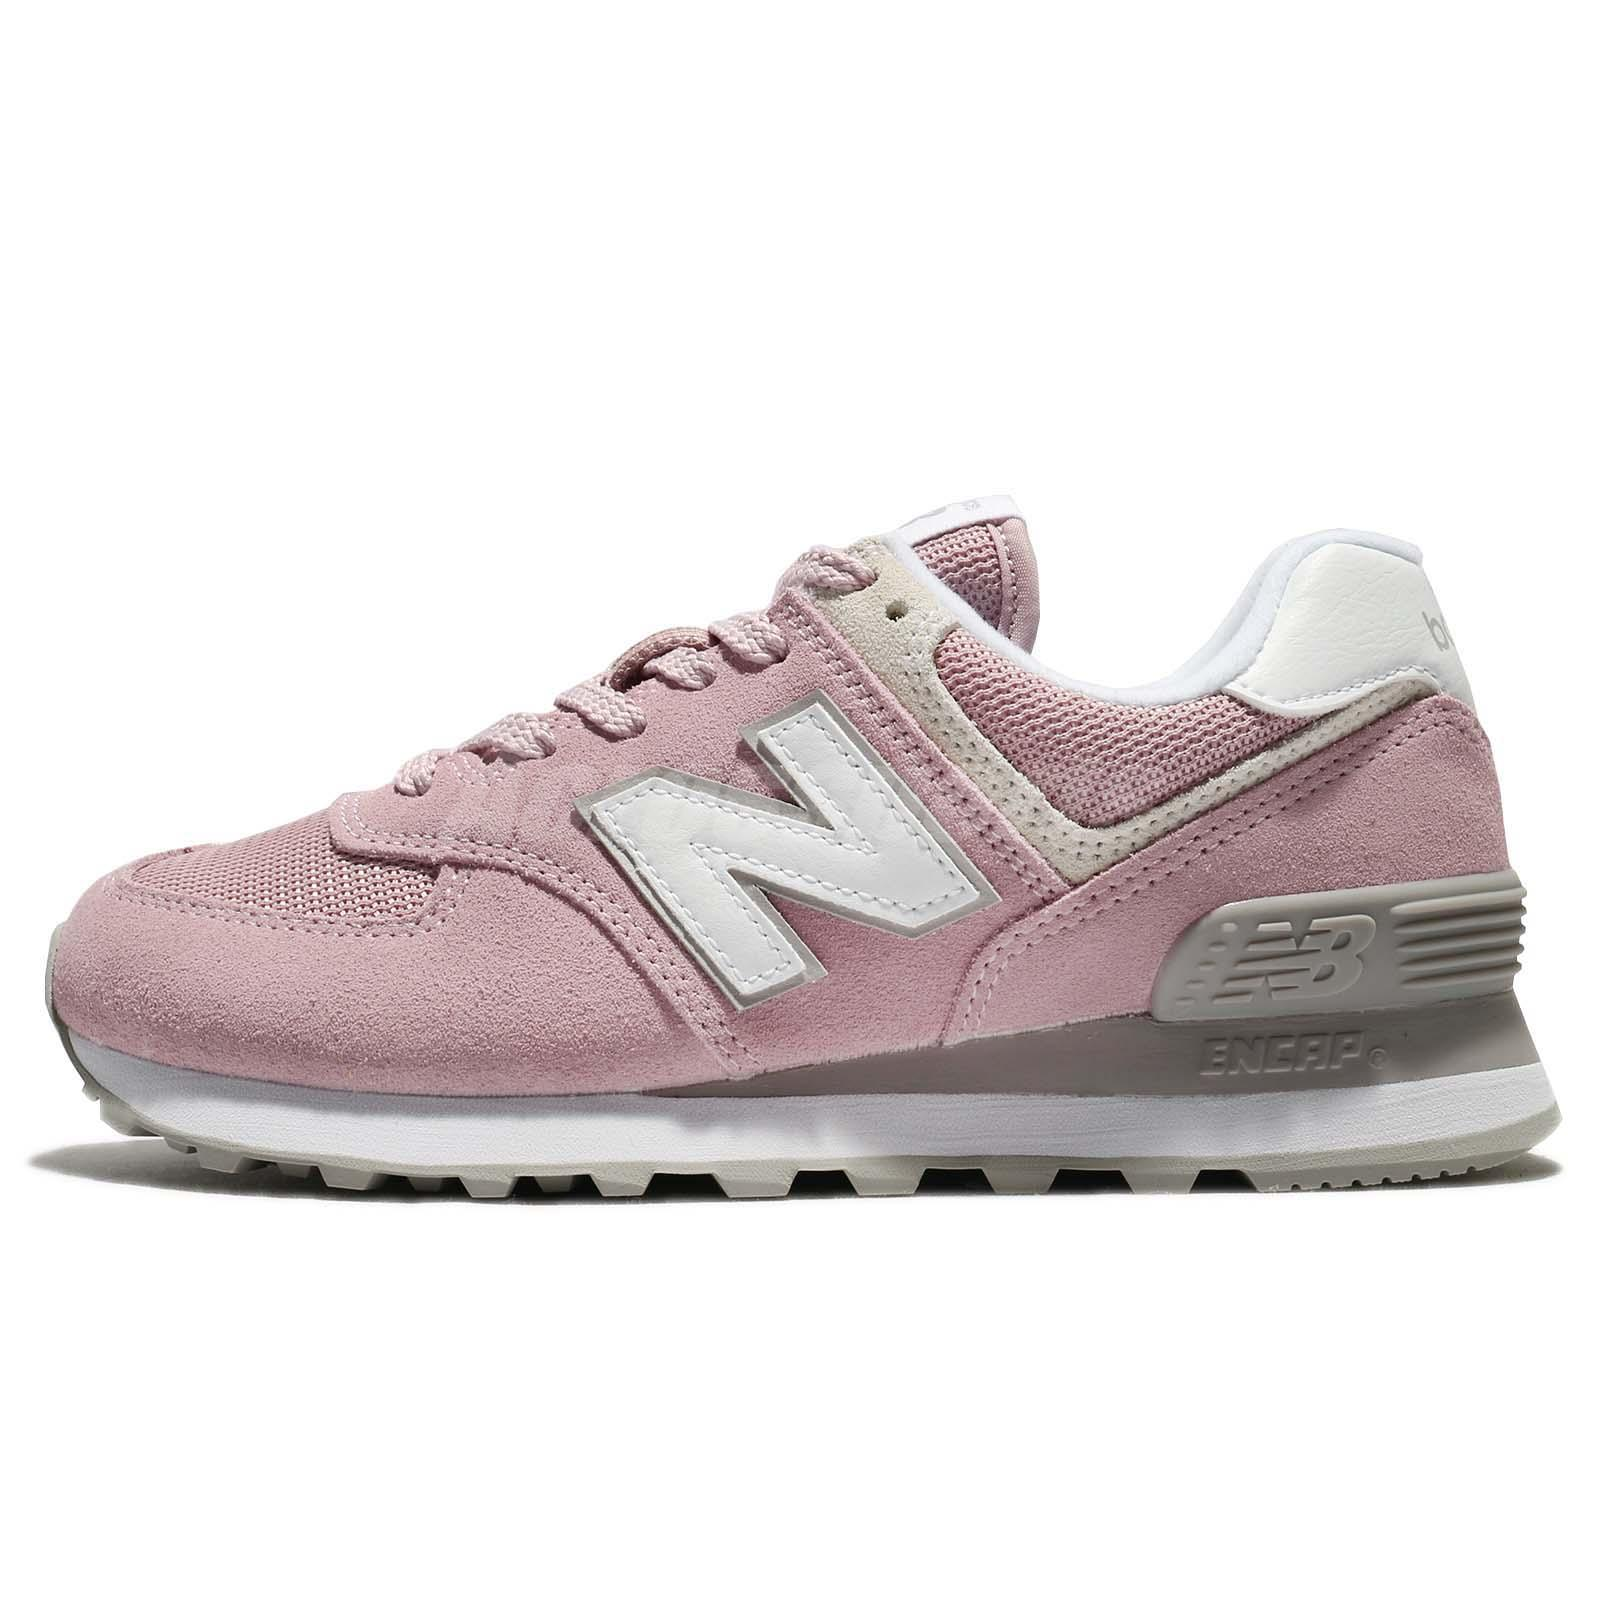 New Balance WL574ESP B 574 Pink White Women Running Shoes Sneakers WL574ESPB